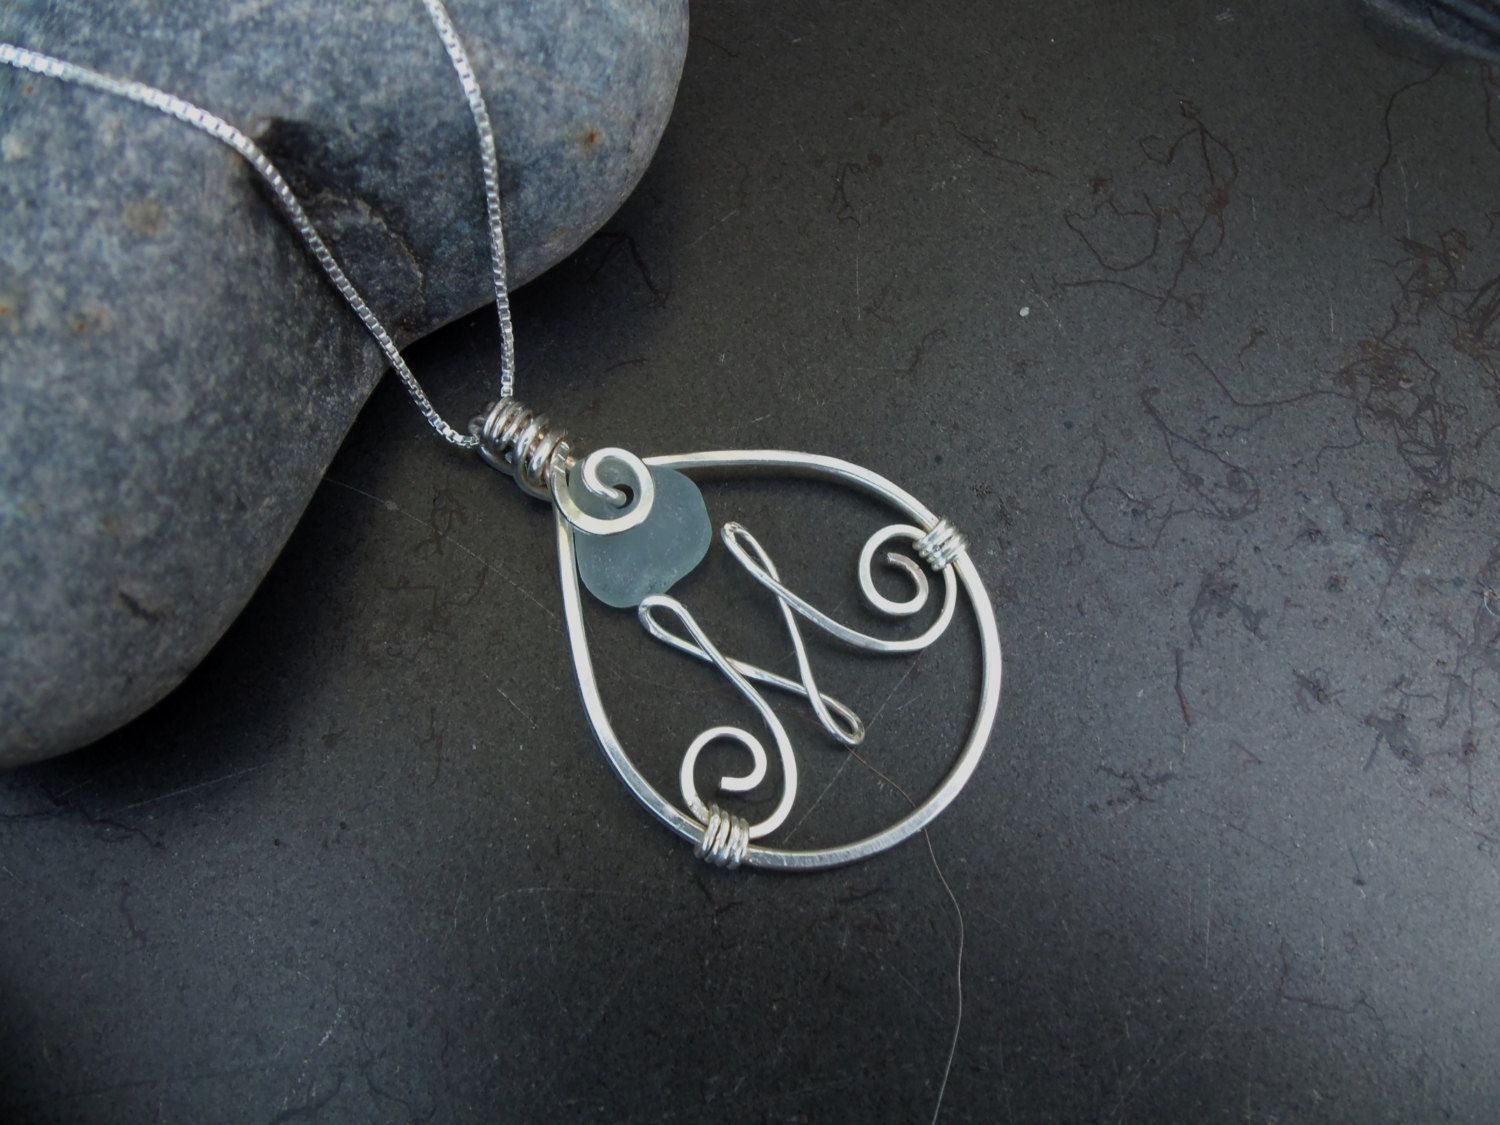 Sea glass jewelry,  Personalized sea glass and sterling silver initial necklace by FatCatsOnTheBeach on Etsy https://www.etsy.com/listing/155827051/sea-glass-jewelry-personalized-sea-glass